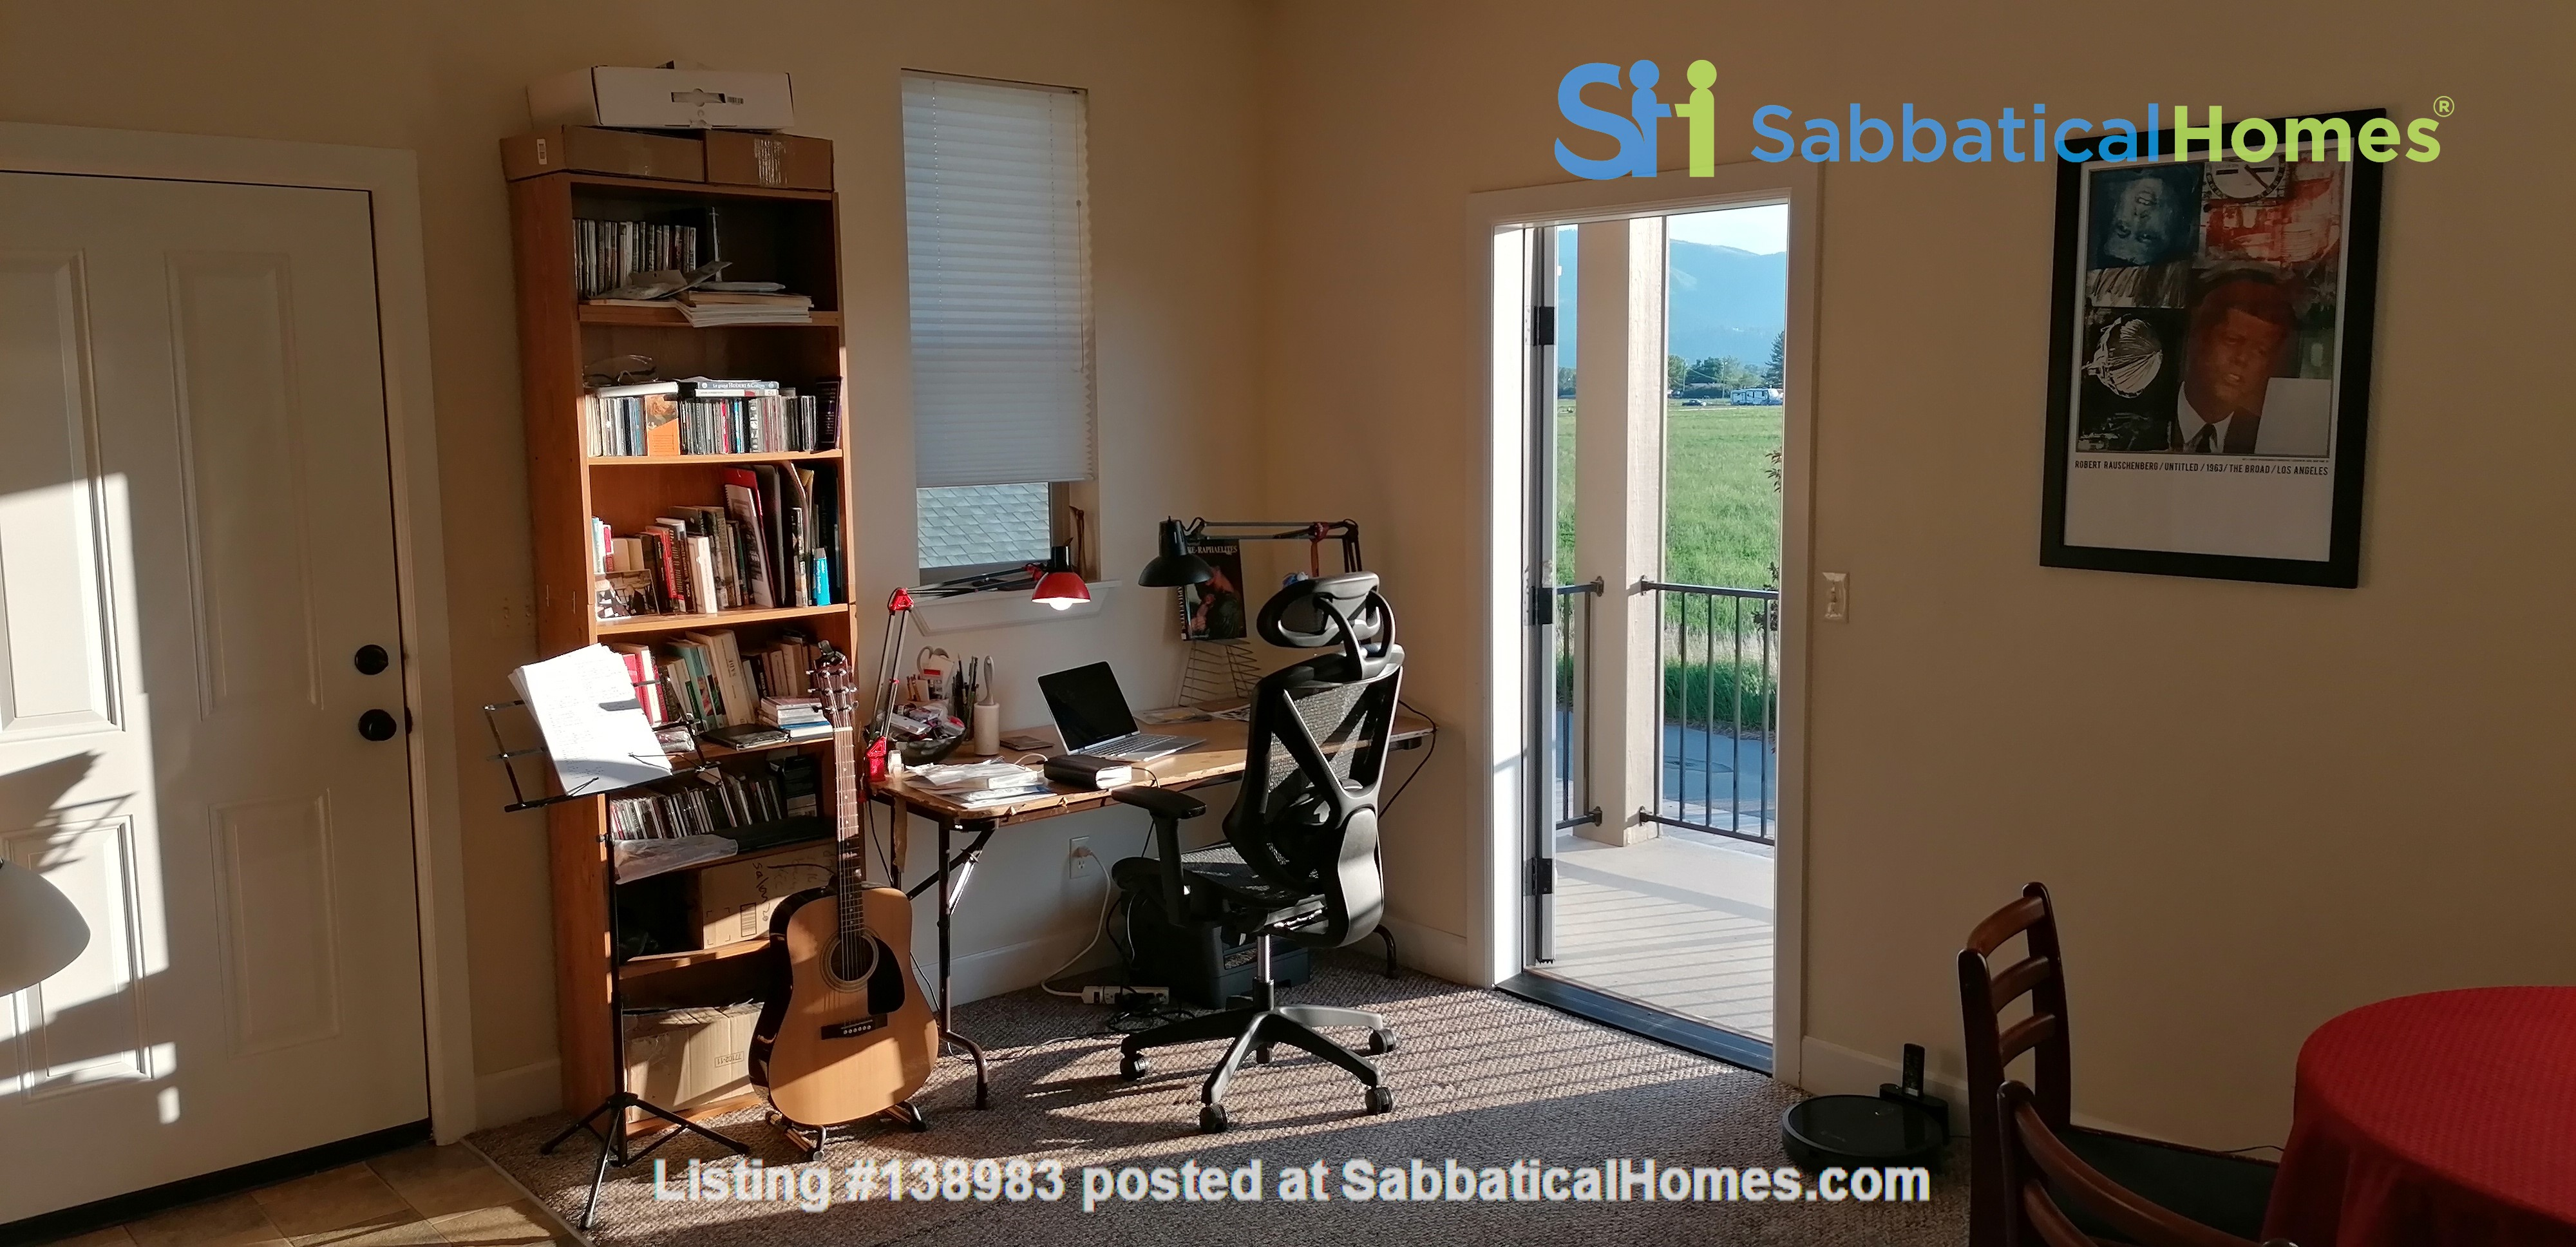 Spacious one bedroom/studio  apartment in Missoula, MT Home Rental in Missoula, Montana, United States 0